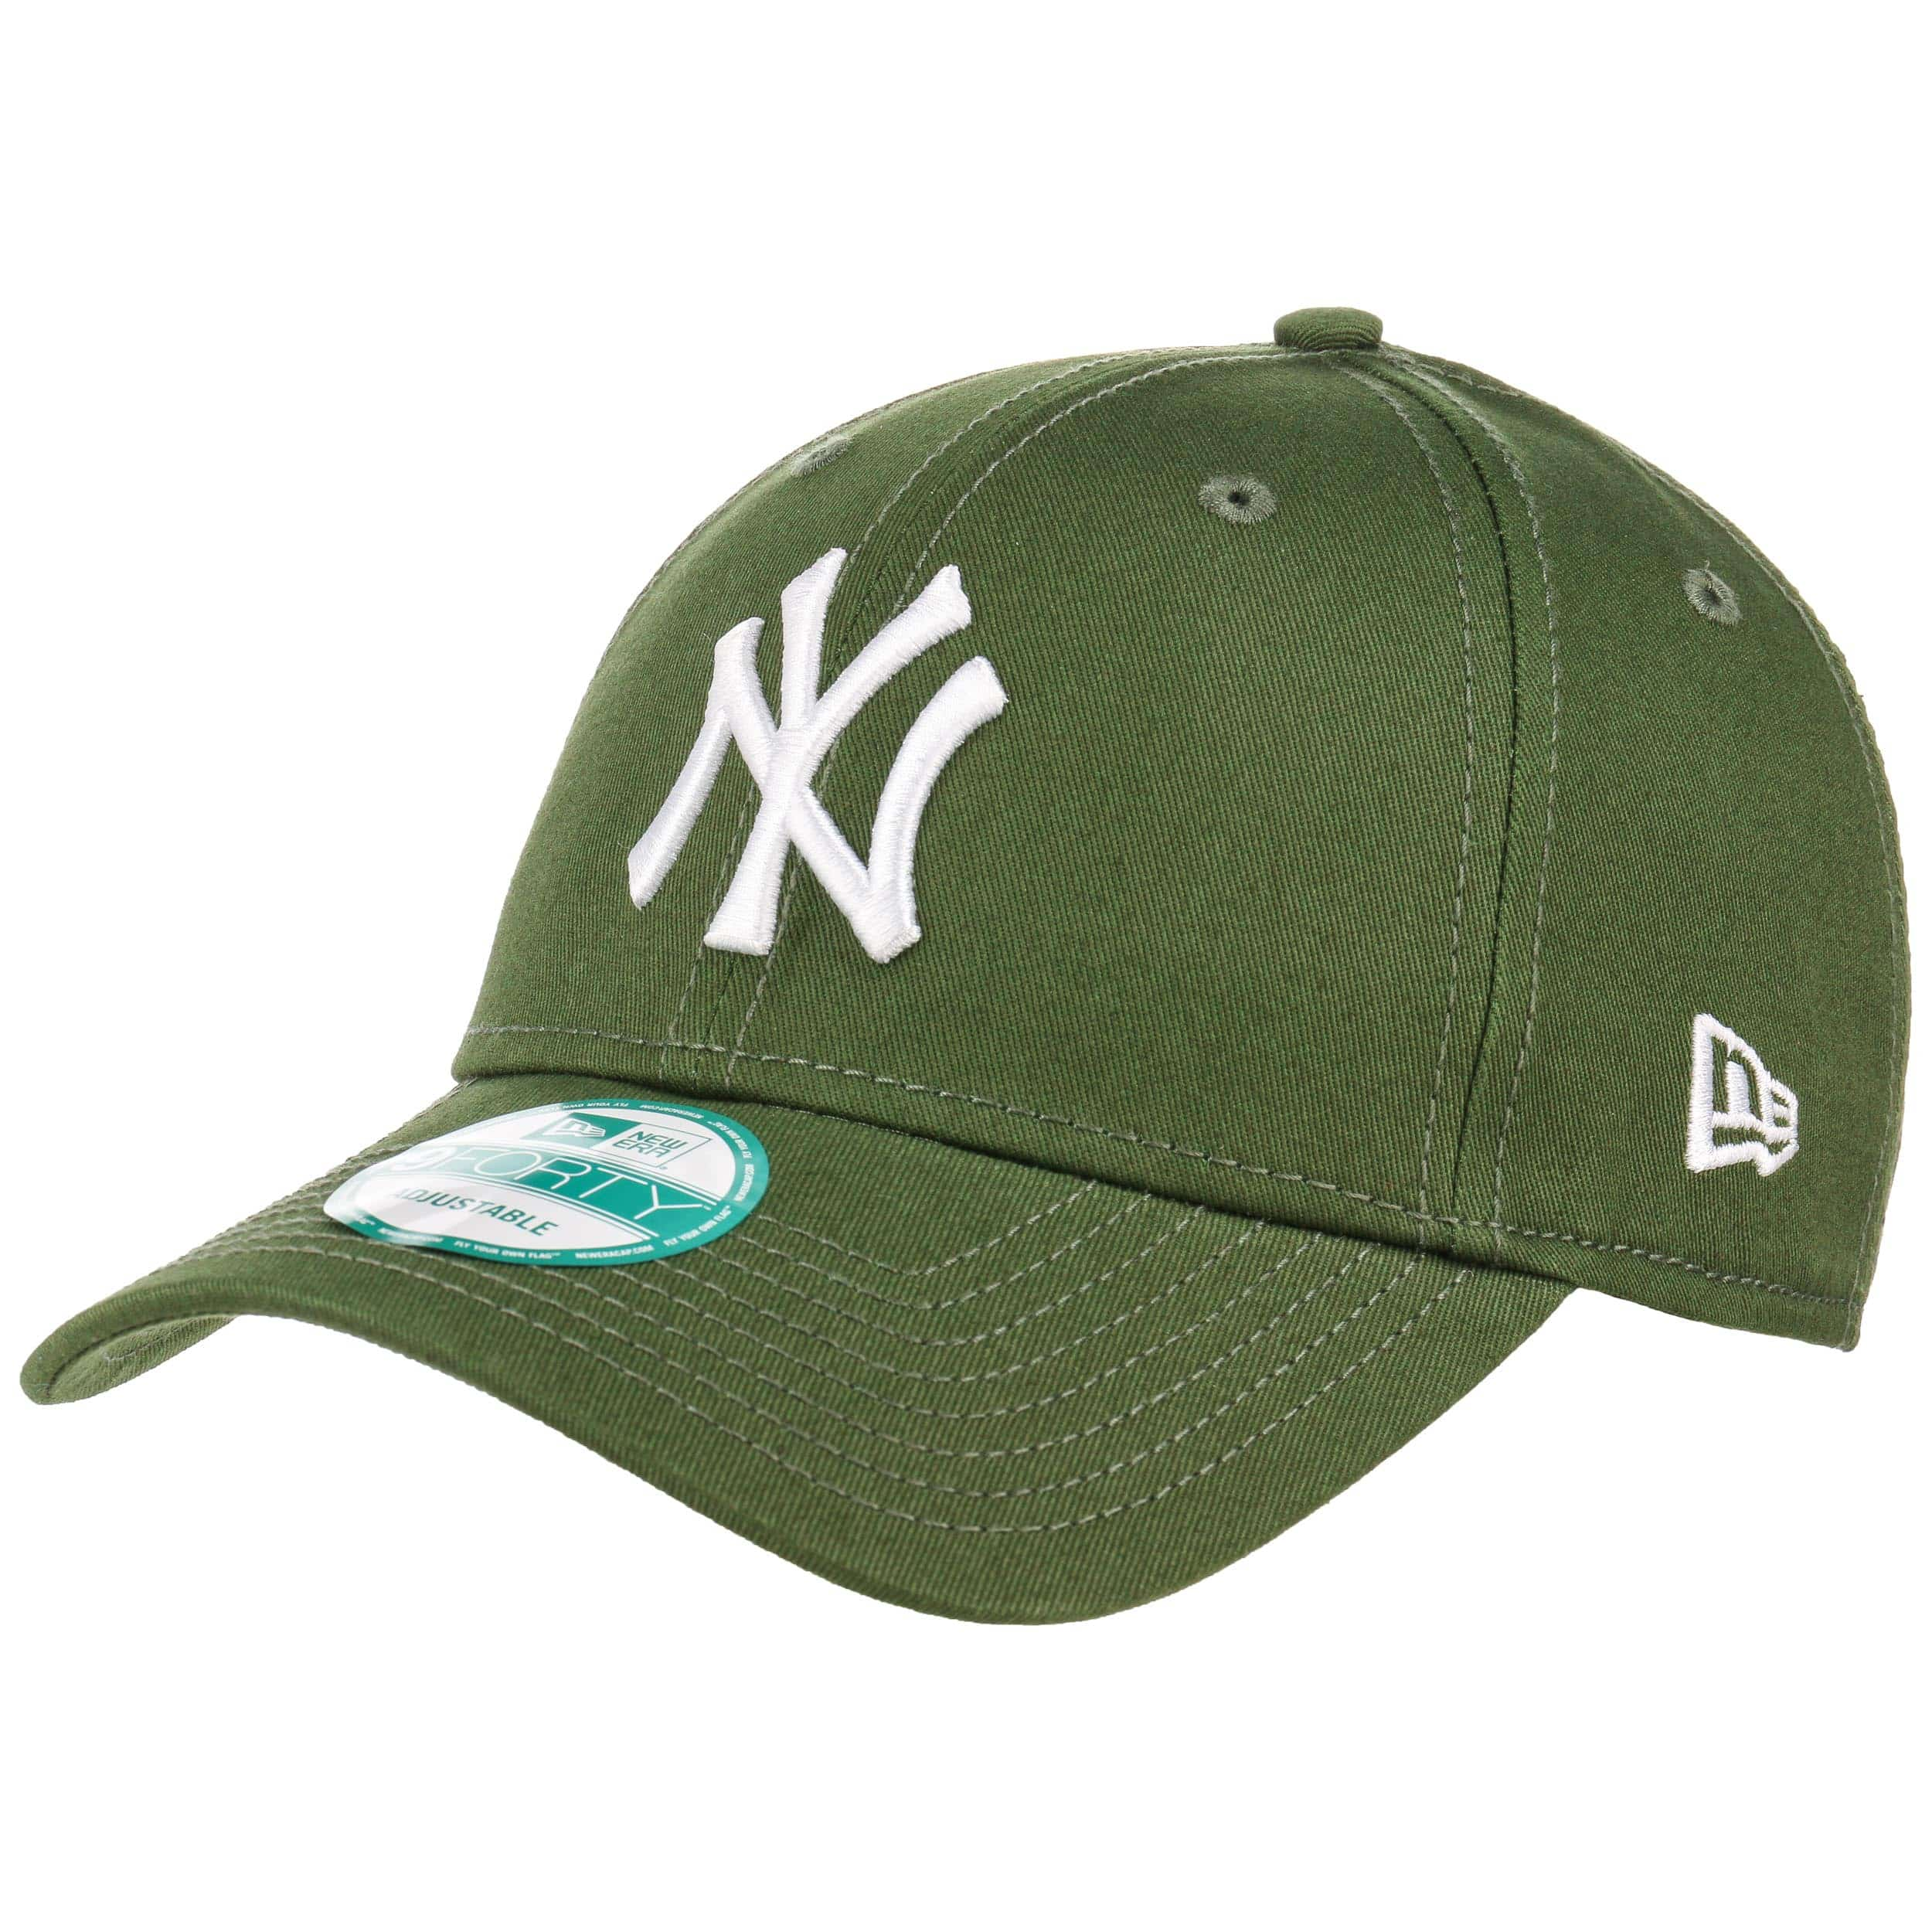 ... 9Forty League Essential NY Cap by New Era - olive 5 ... 2ad5d4e0d7